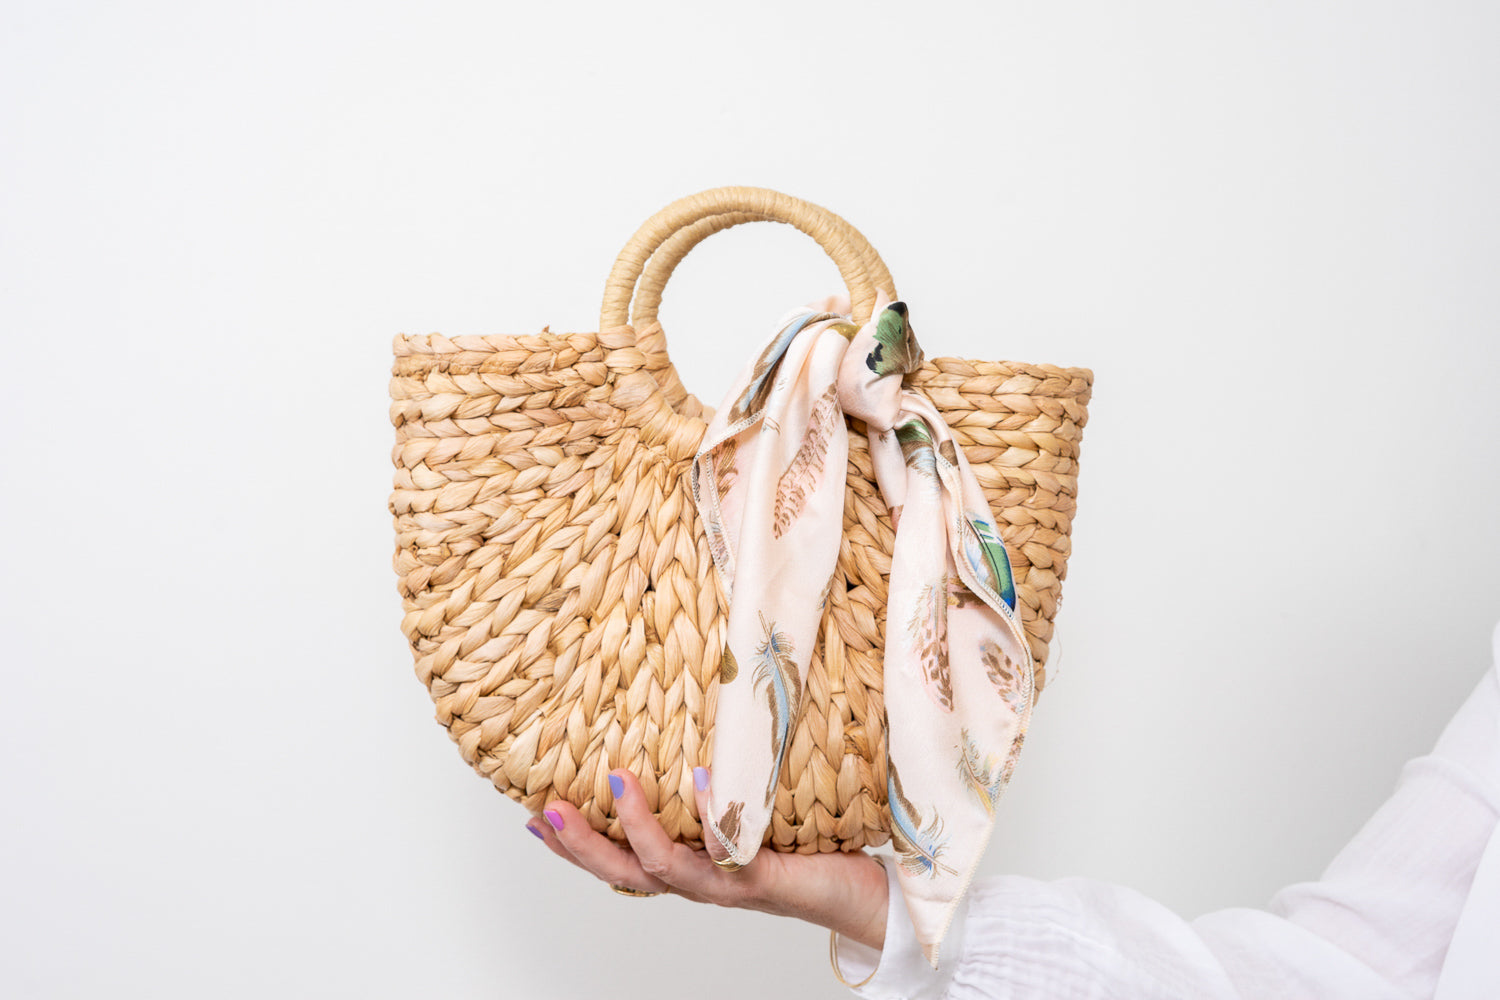 natural raffia straw rattan tote hand bag with pale blush scarf held in hand Janna Conner